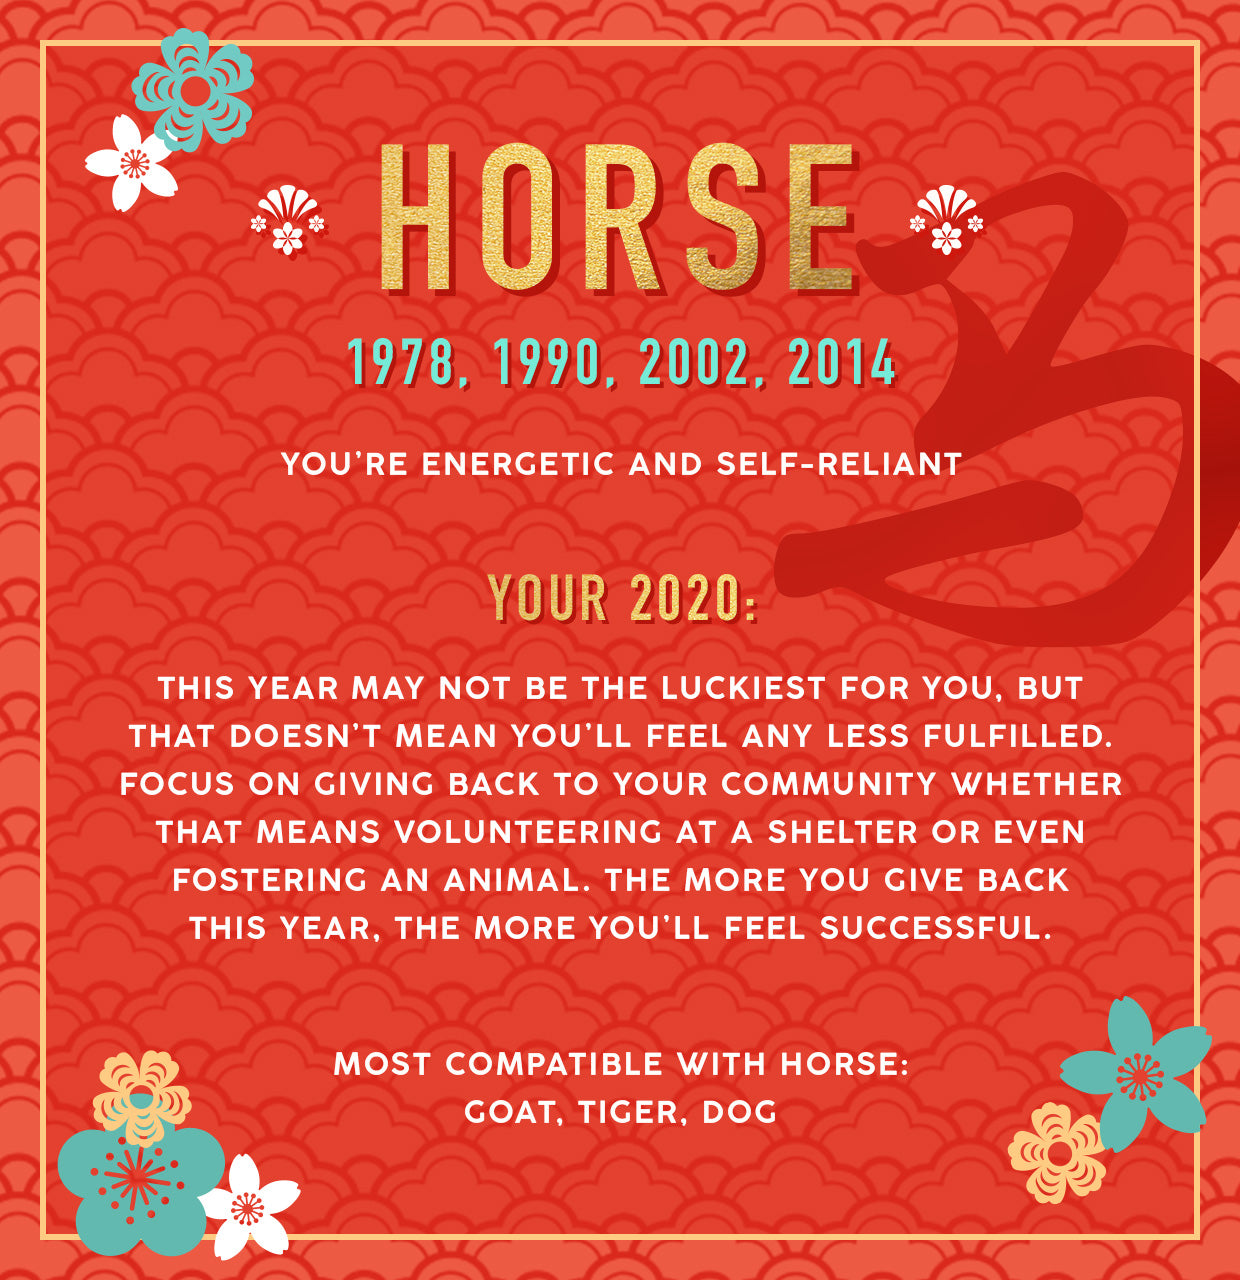 Horse Lunar New Year Collection Banner Image